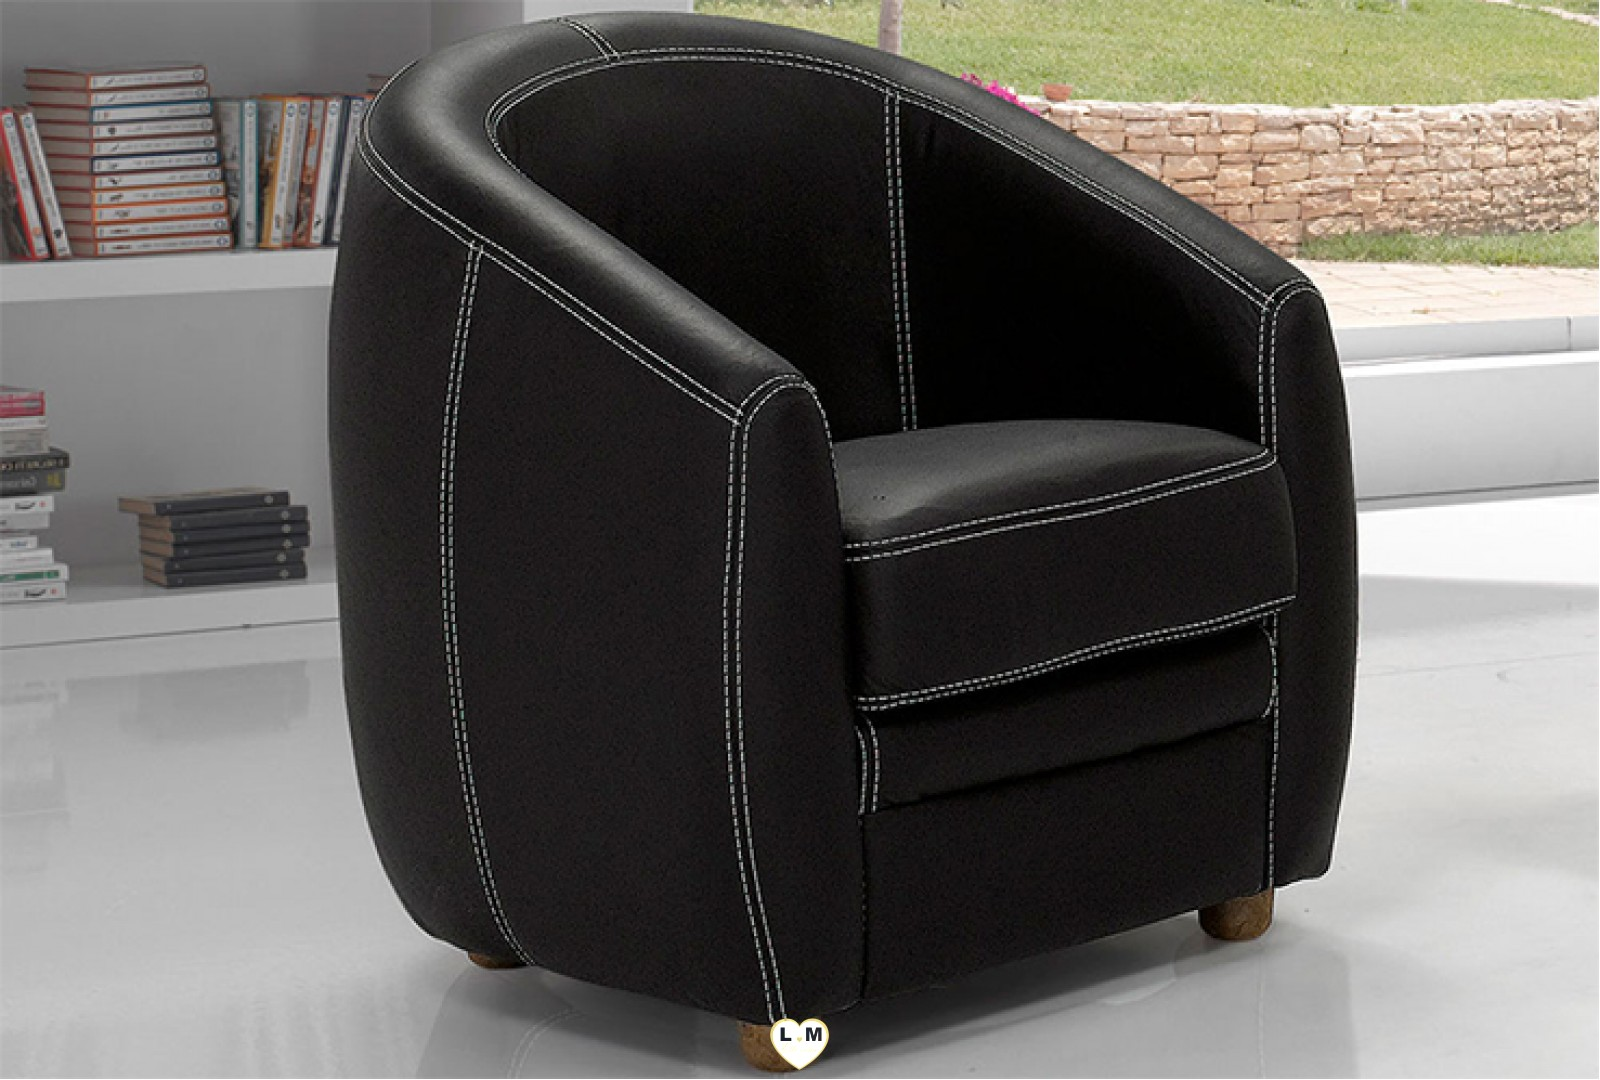 apolline fauteuil cuir cabriolet lignemeuble com. Black Bedroom Furniture Sets. Home Design Ideas